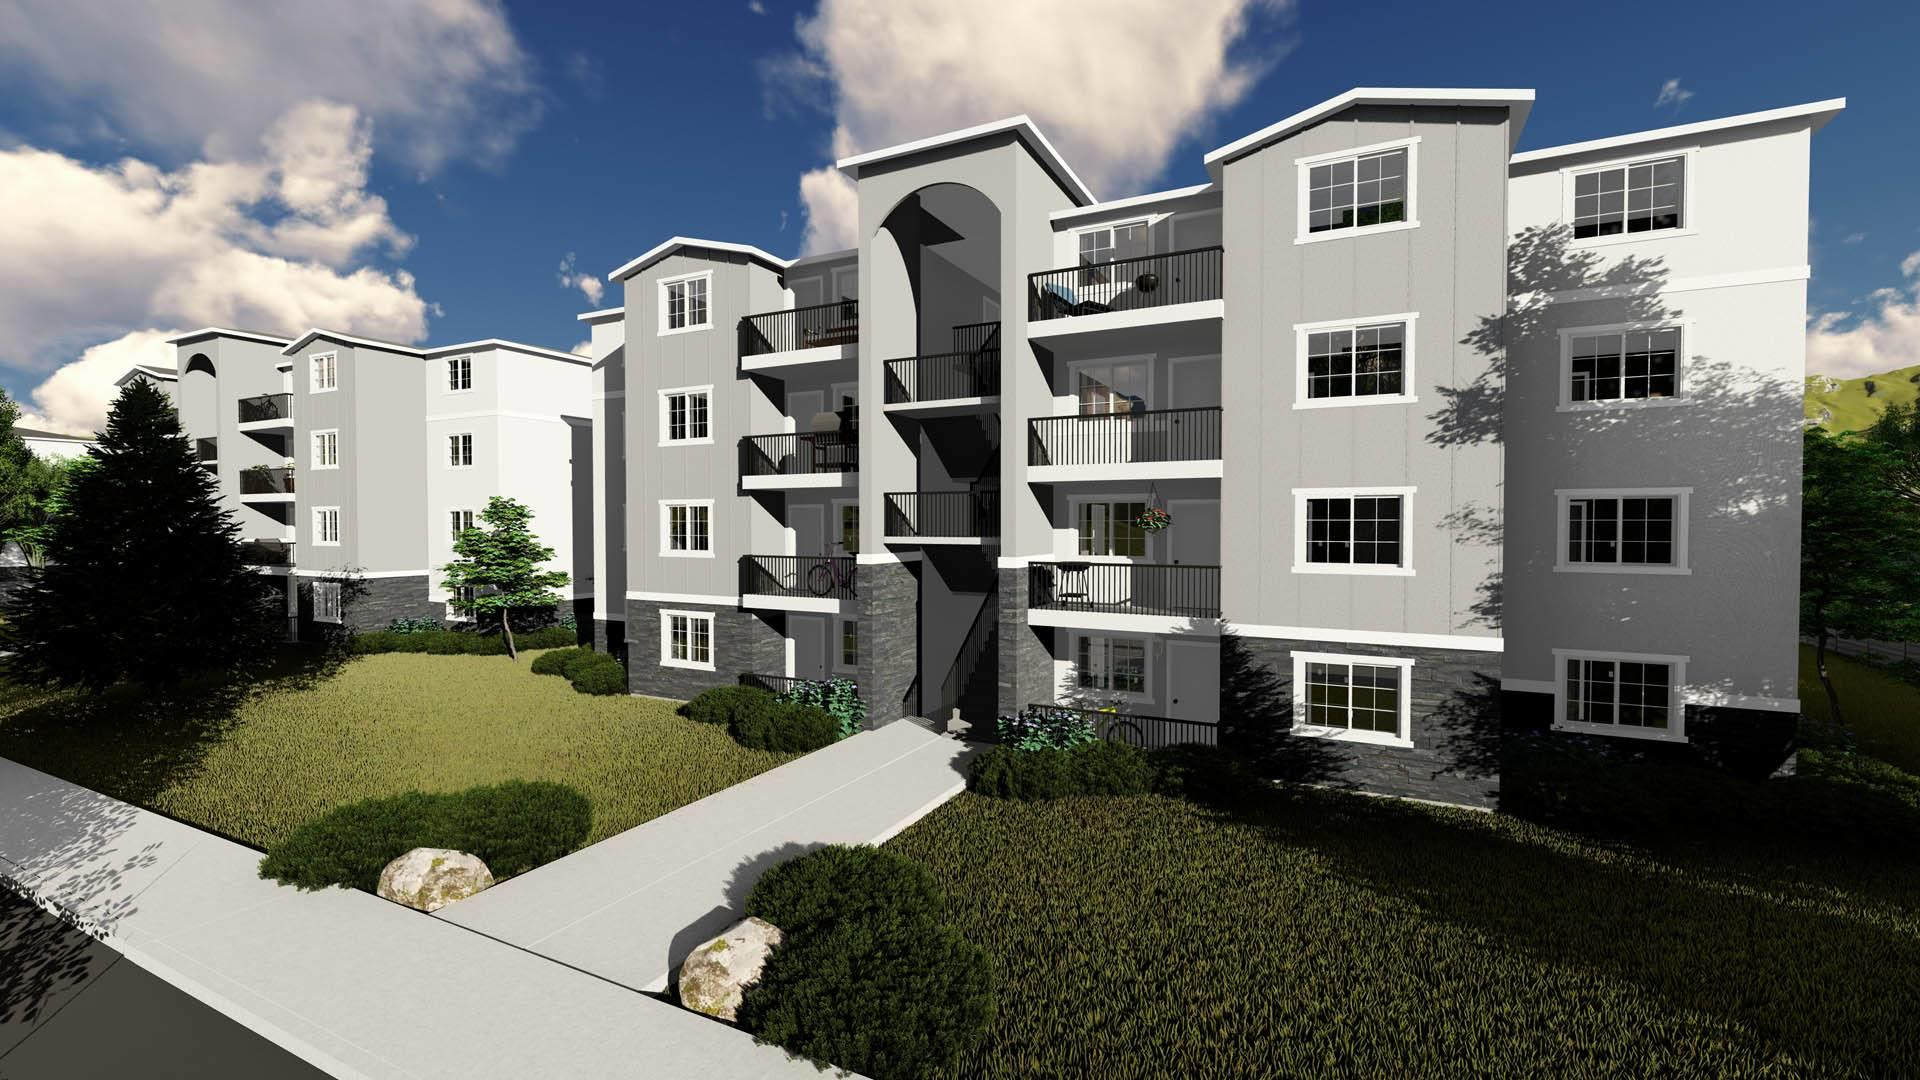 Blackstone Farms, a New Construction Multifamily Investment from the Fourplex Investment Group